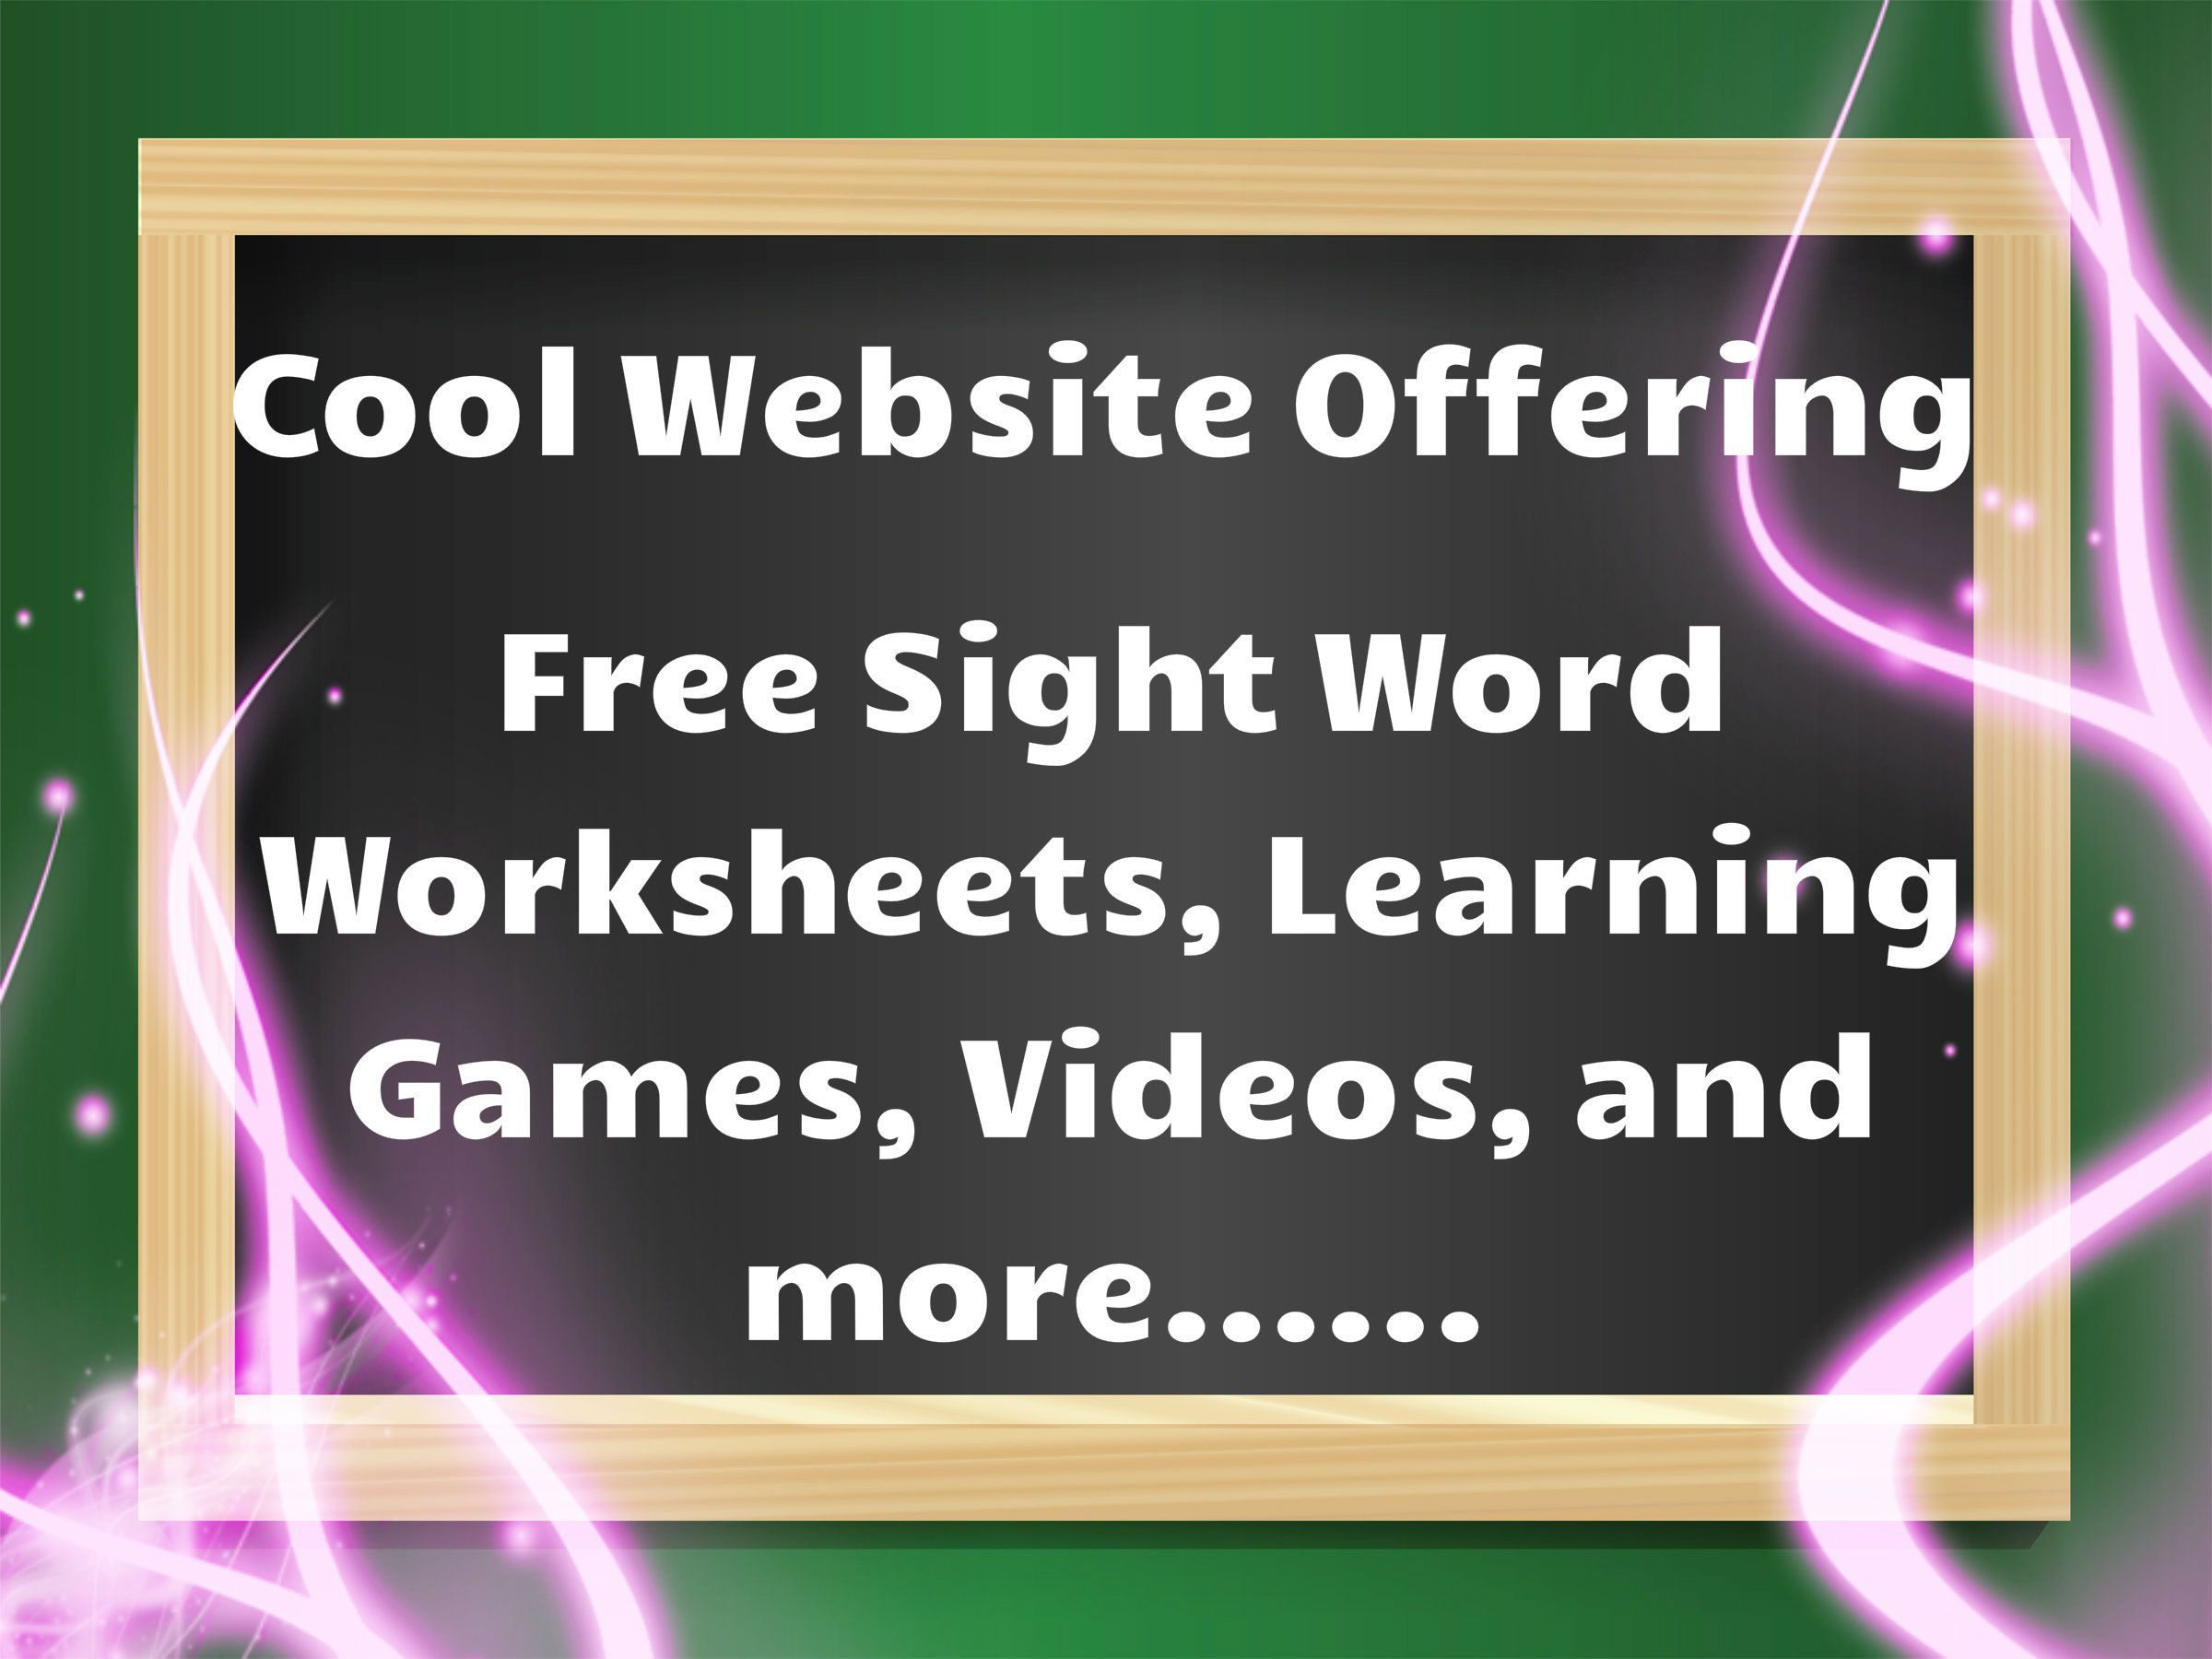 Cool Website Offering High Quality Free Sight Word